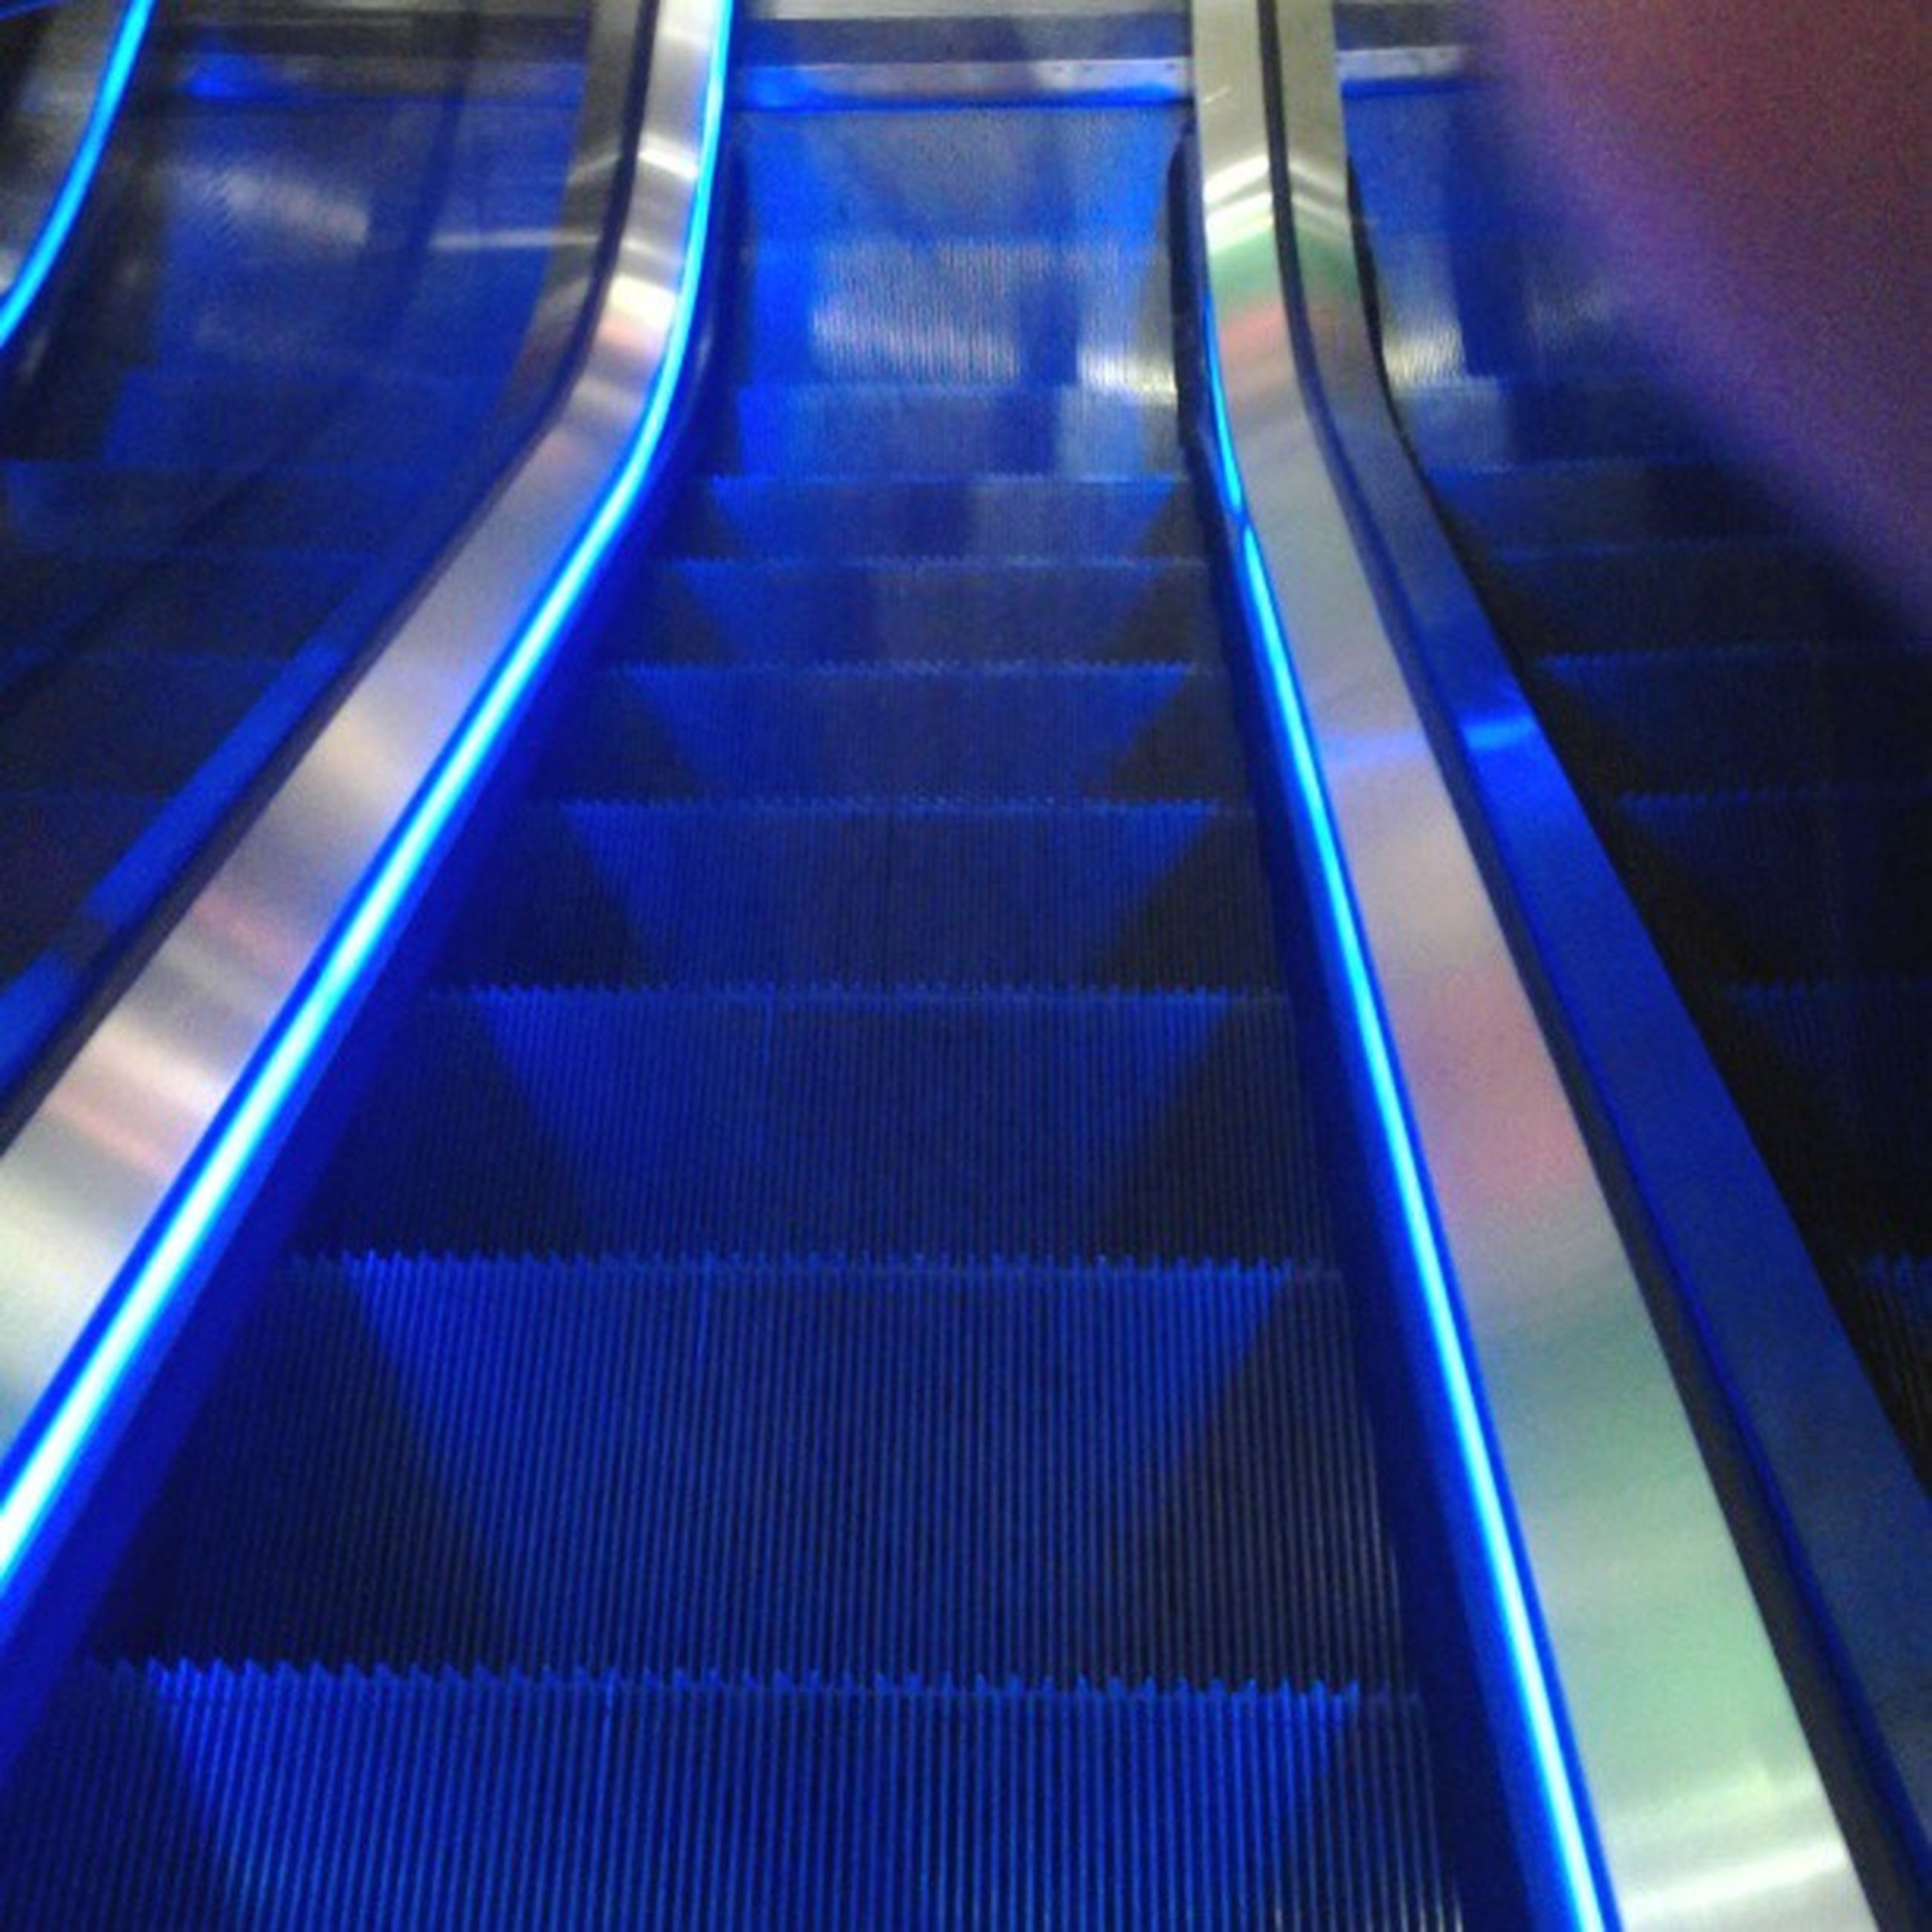 indoors, steps and staircases, steps, staircase, escalator, illuminated, railing, the way forward, empty, high angle view, modern, pattern, architecture, absence, diminishing perspective, built structure, ceiling, blue, no people, convenience